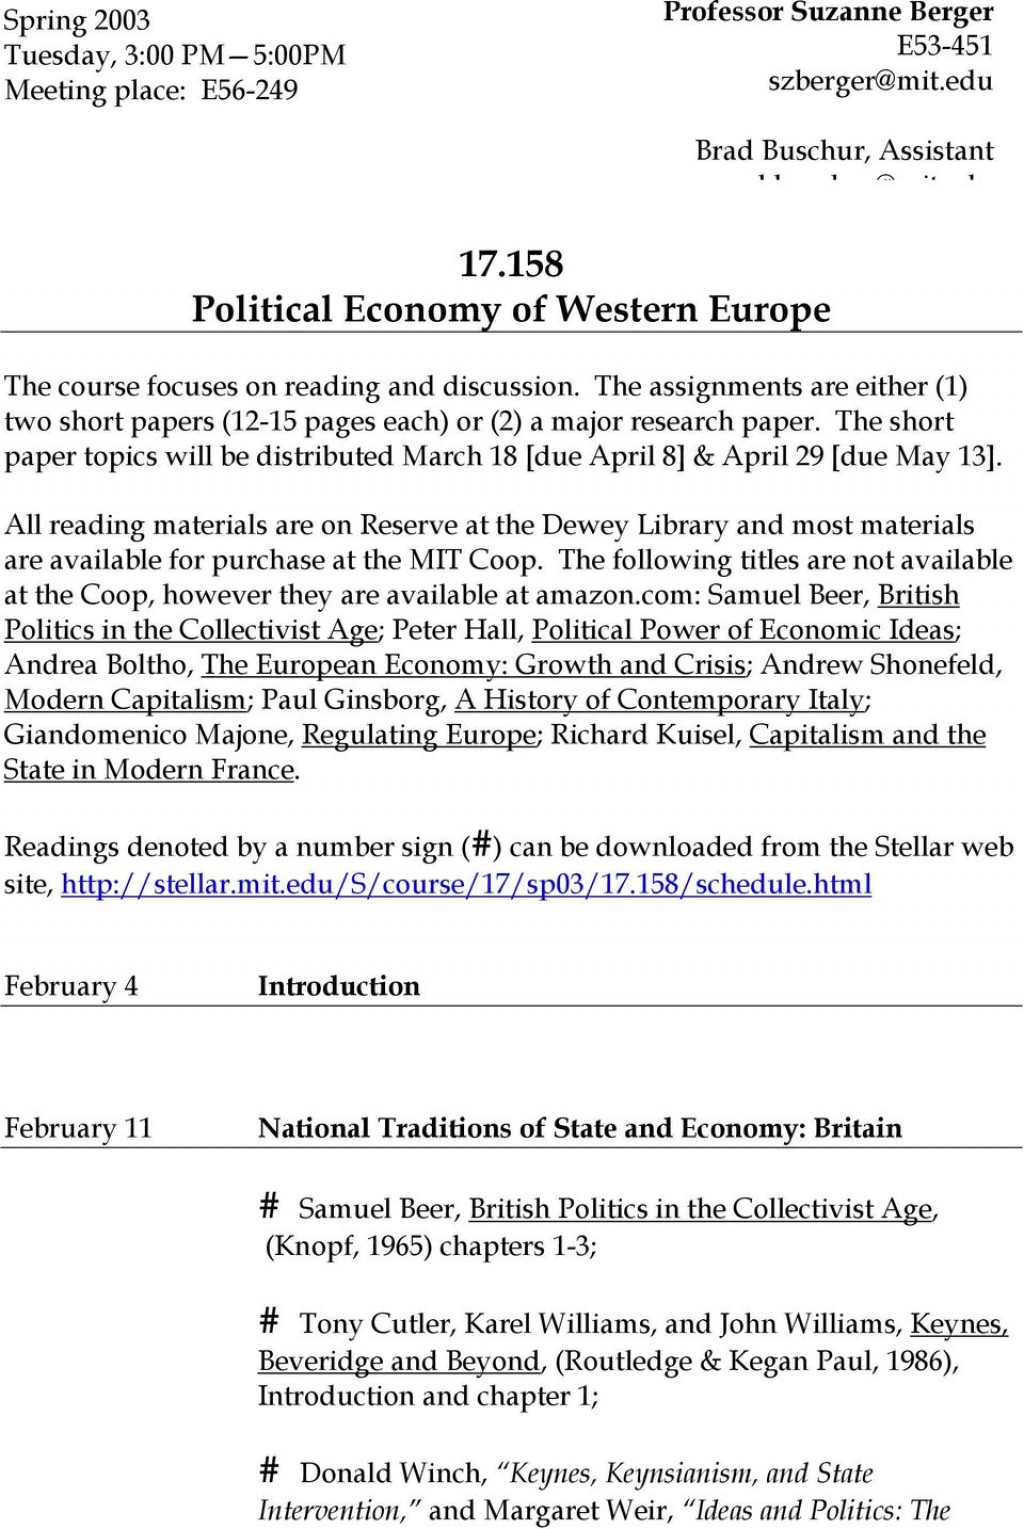 021 Research Paper Political Economy Topics Page 1 Awesome International Global Large